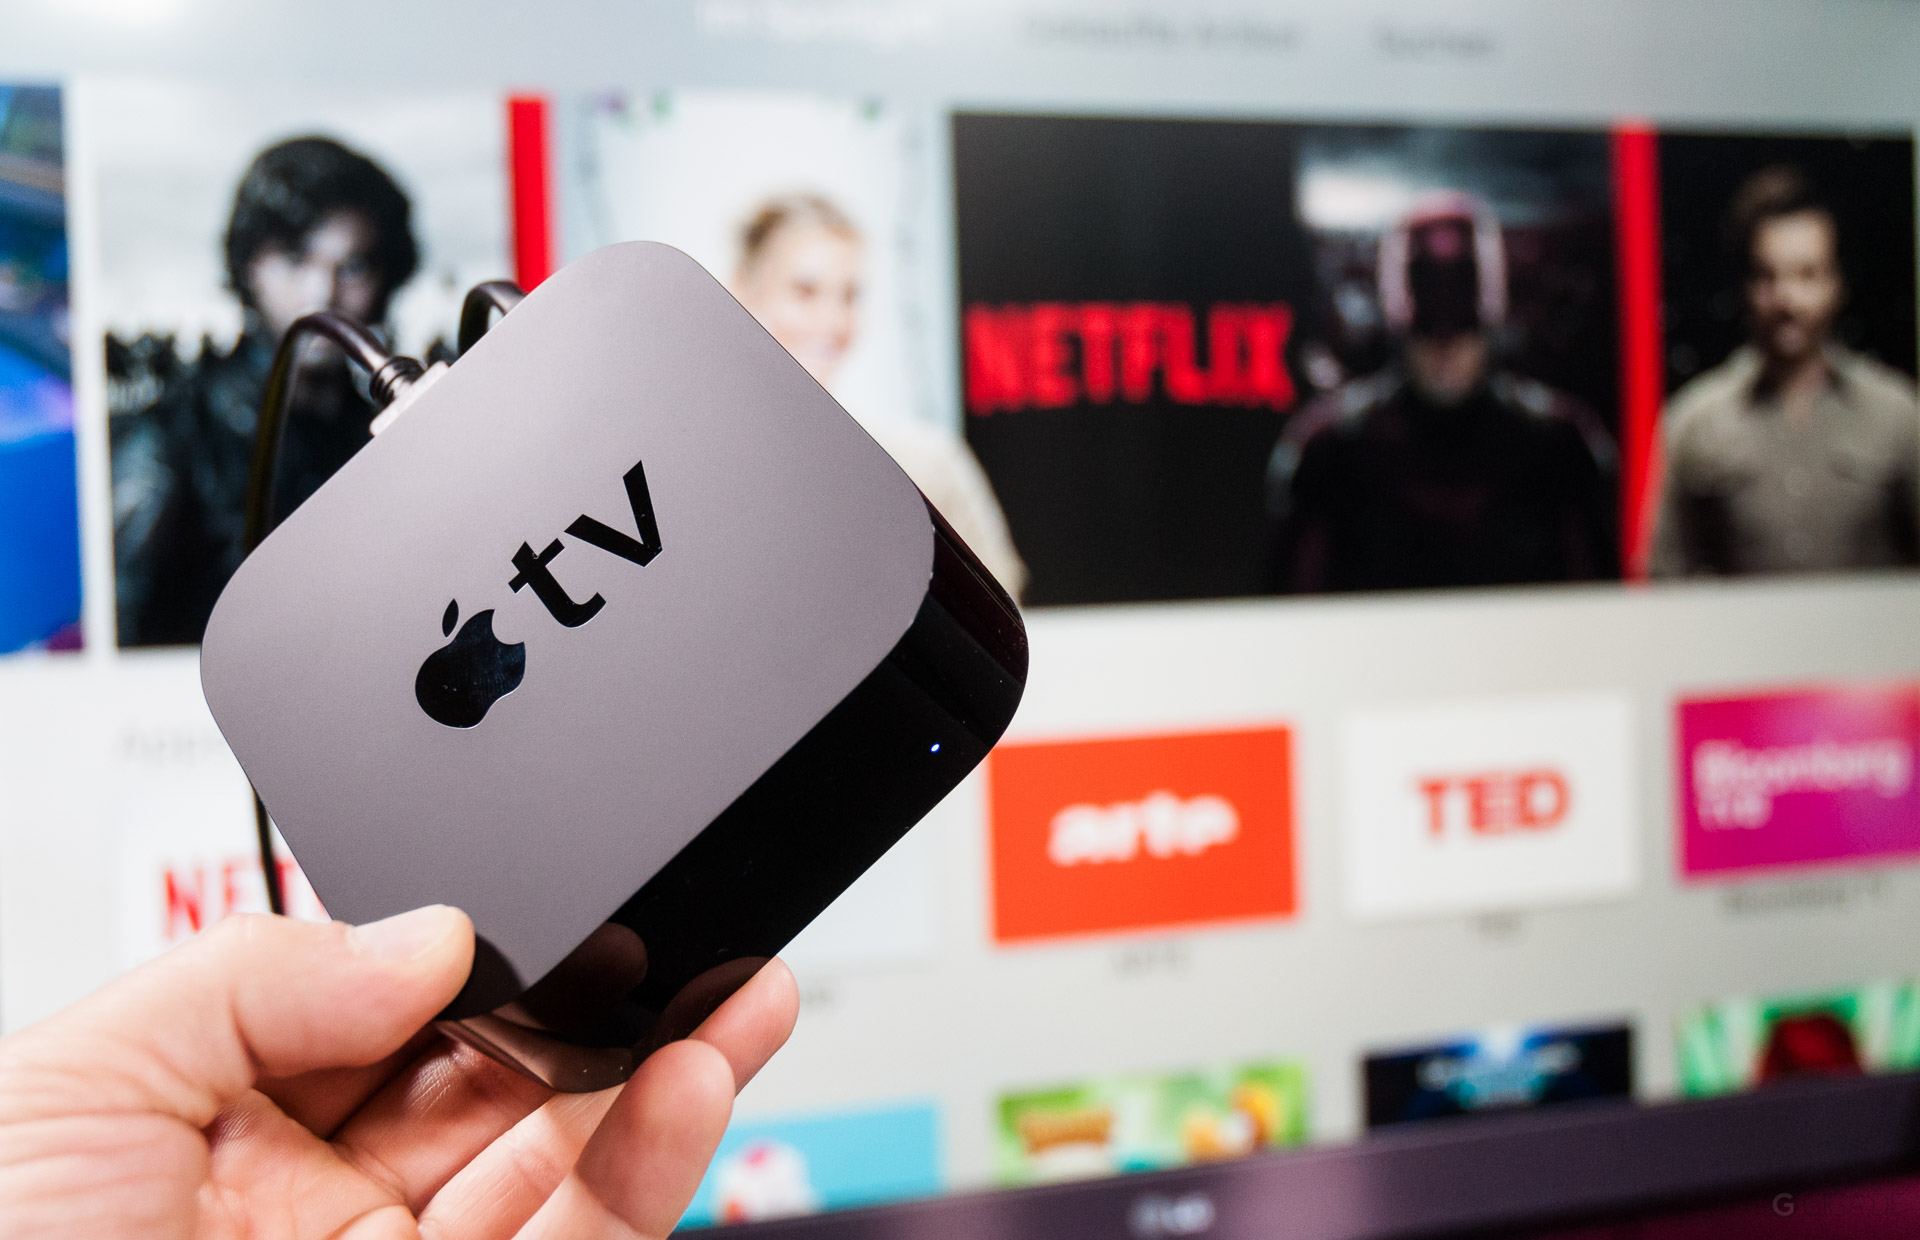 17 small, but attractive features of the Apple TV 4